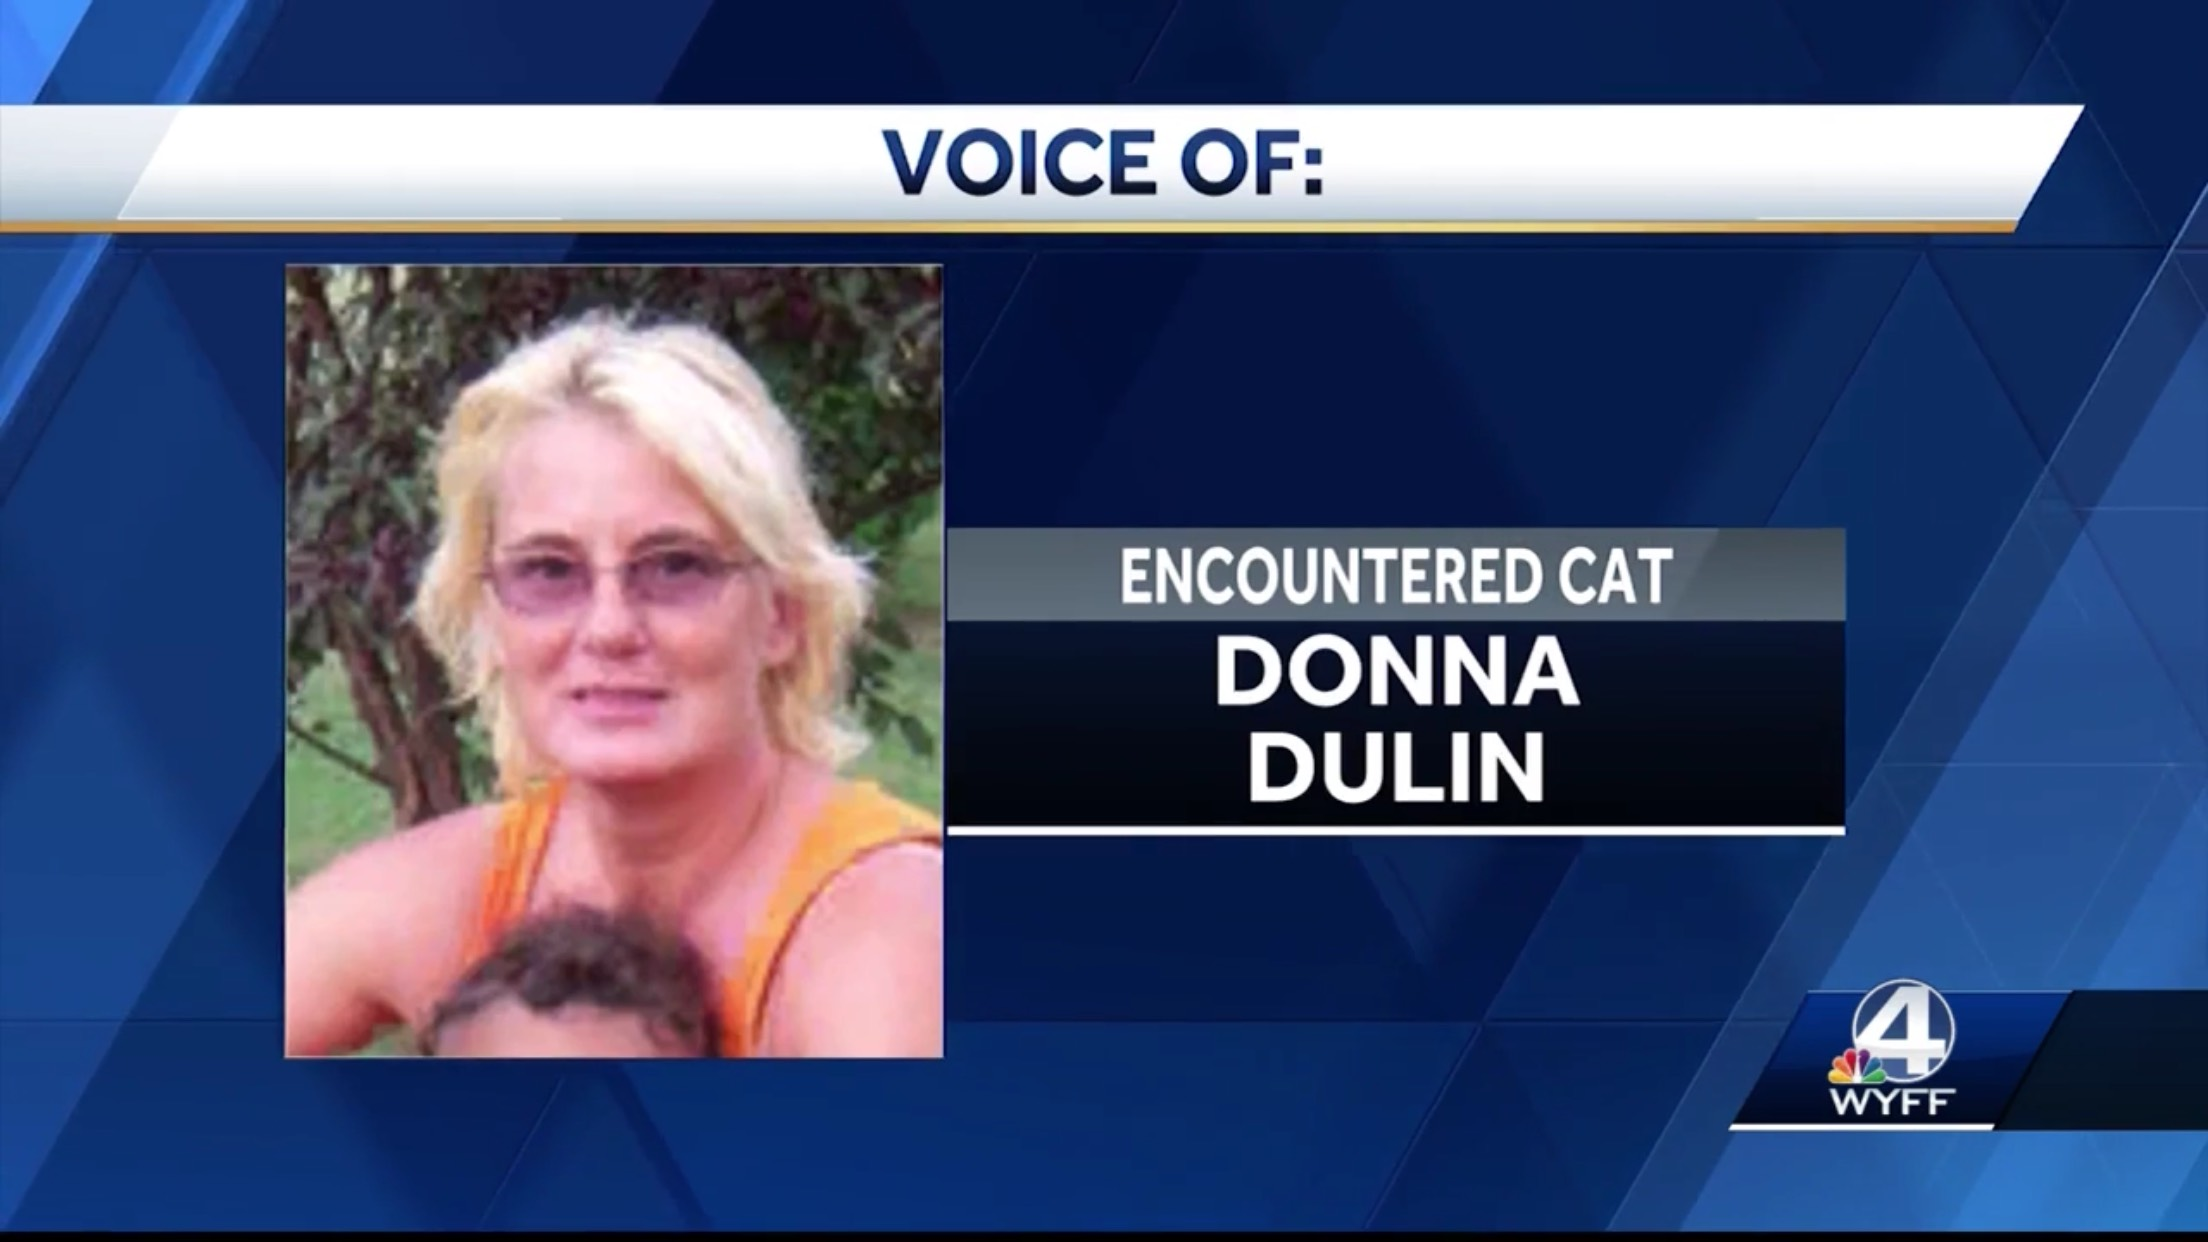 Donna Dulin: Encountered Cat